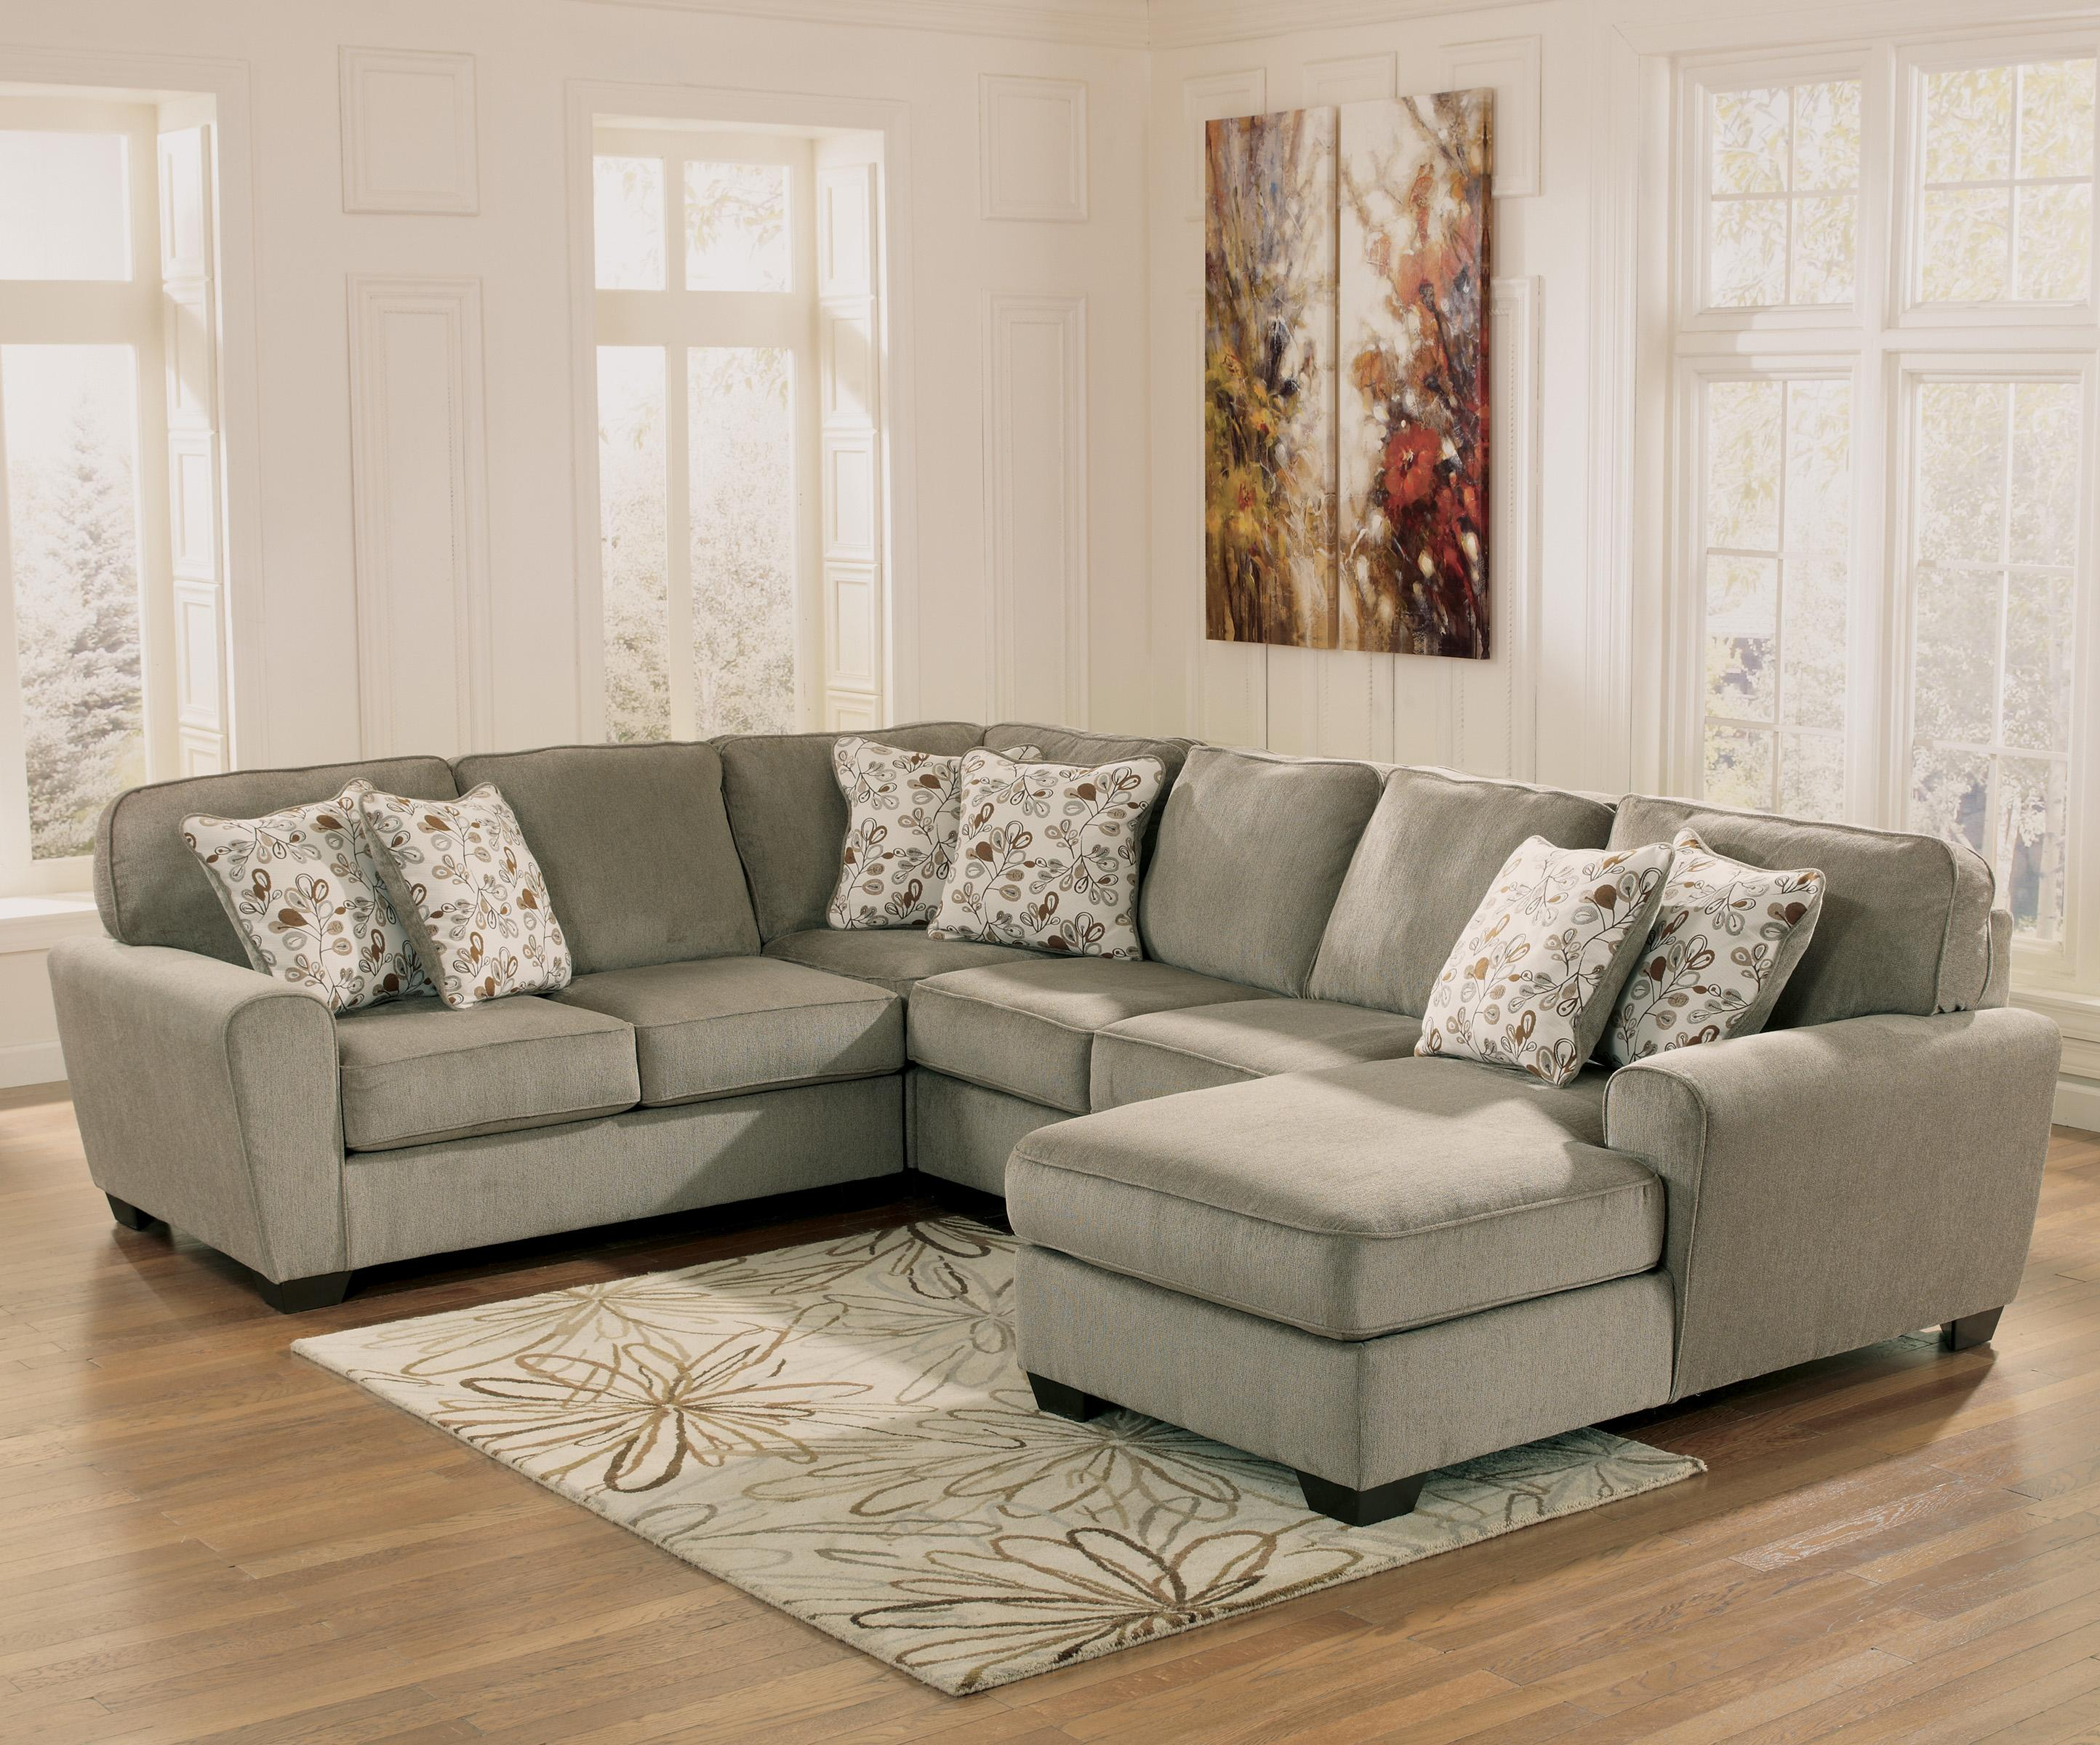 Ashley Furniture Patola Park - Patina 4-Piece Small Sectional with Right Chaise - Item Number: 1290055+77+34+17